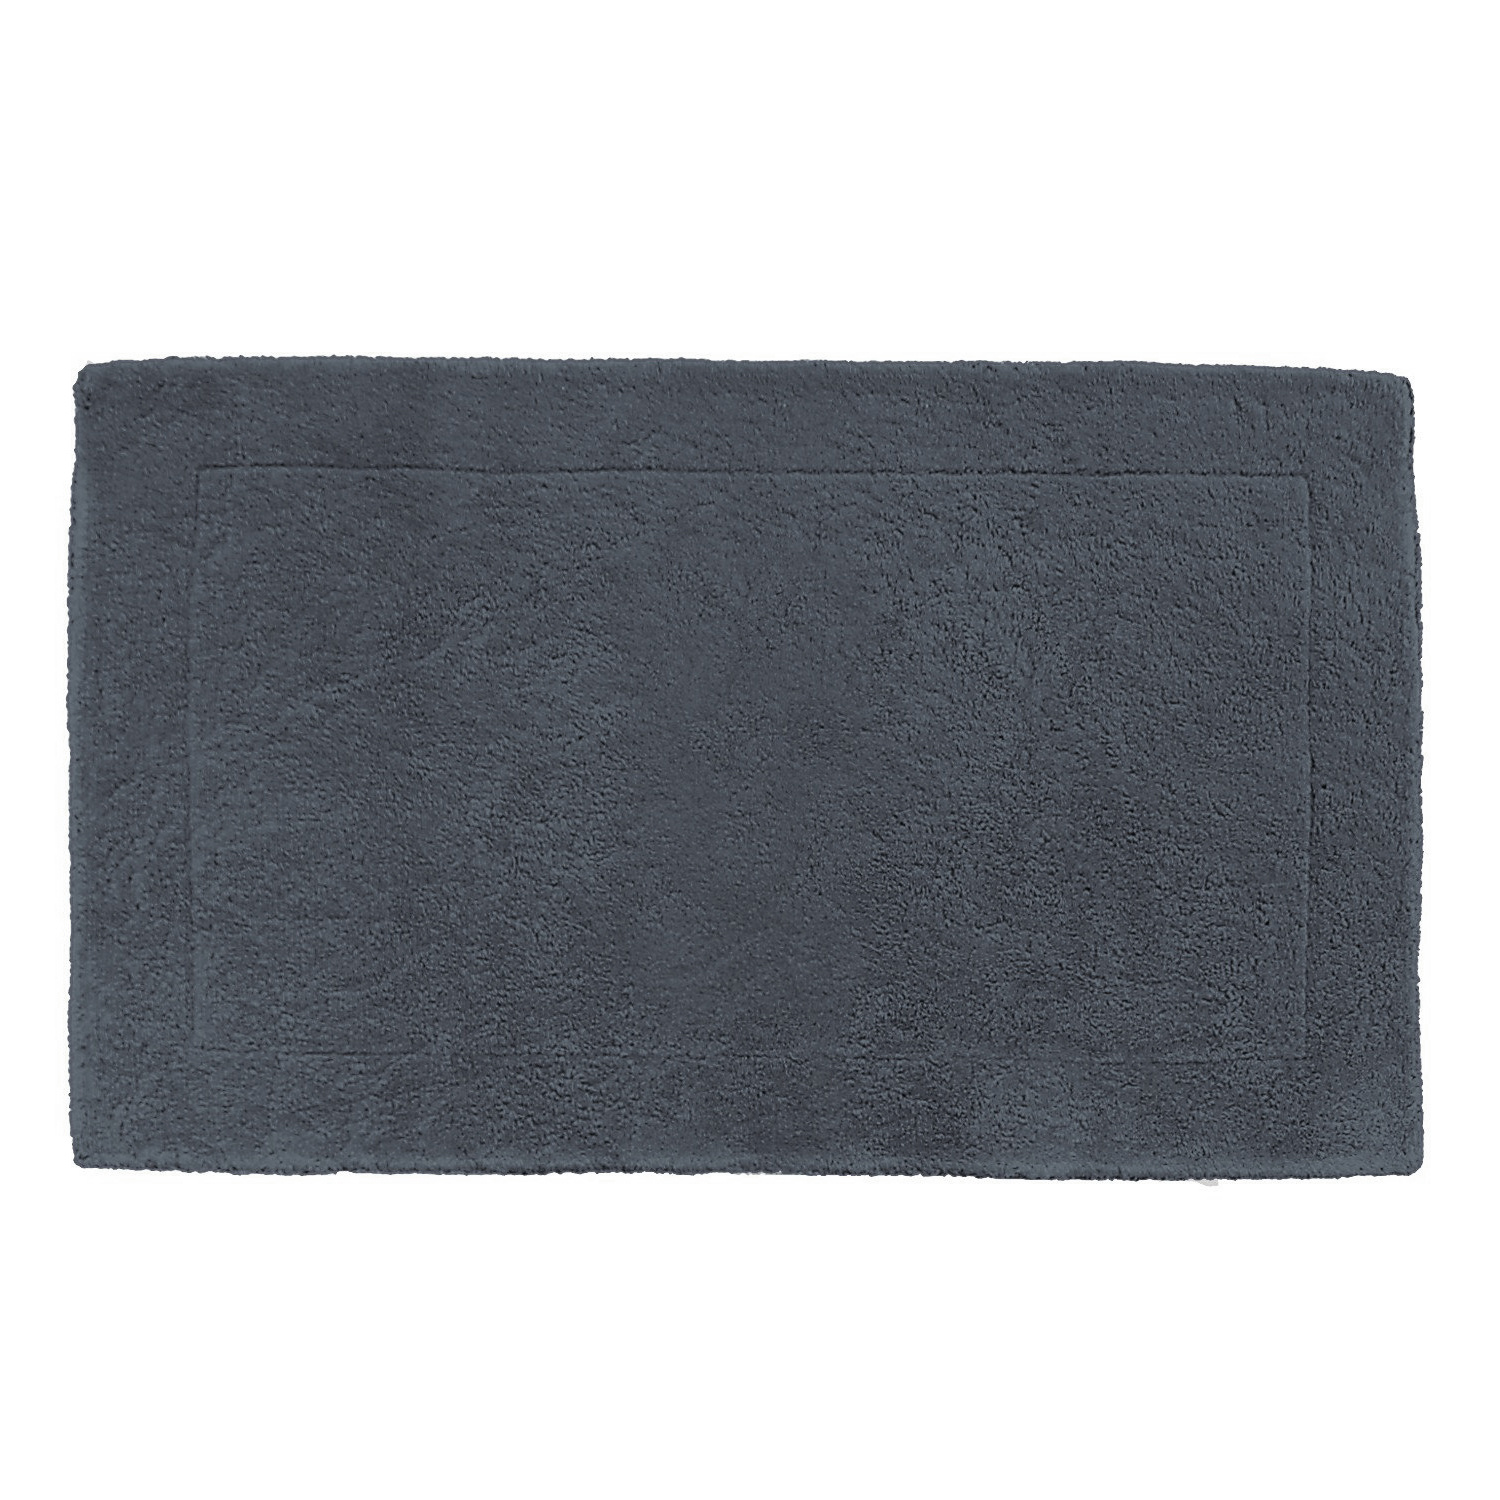 Double Sided Bath Rugs - Assorted Colours-8